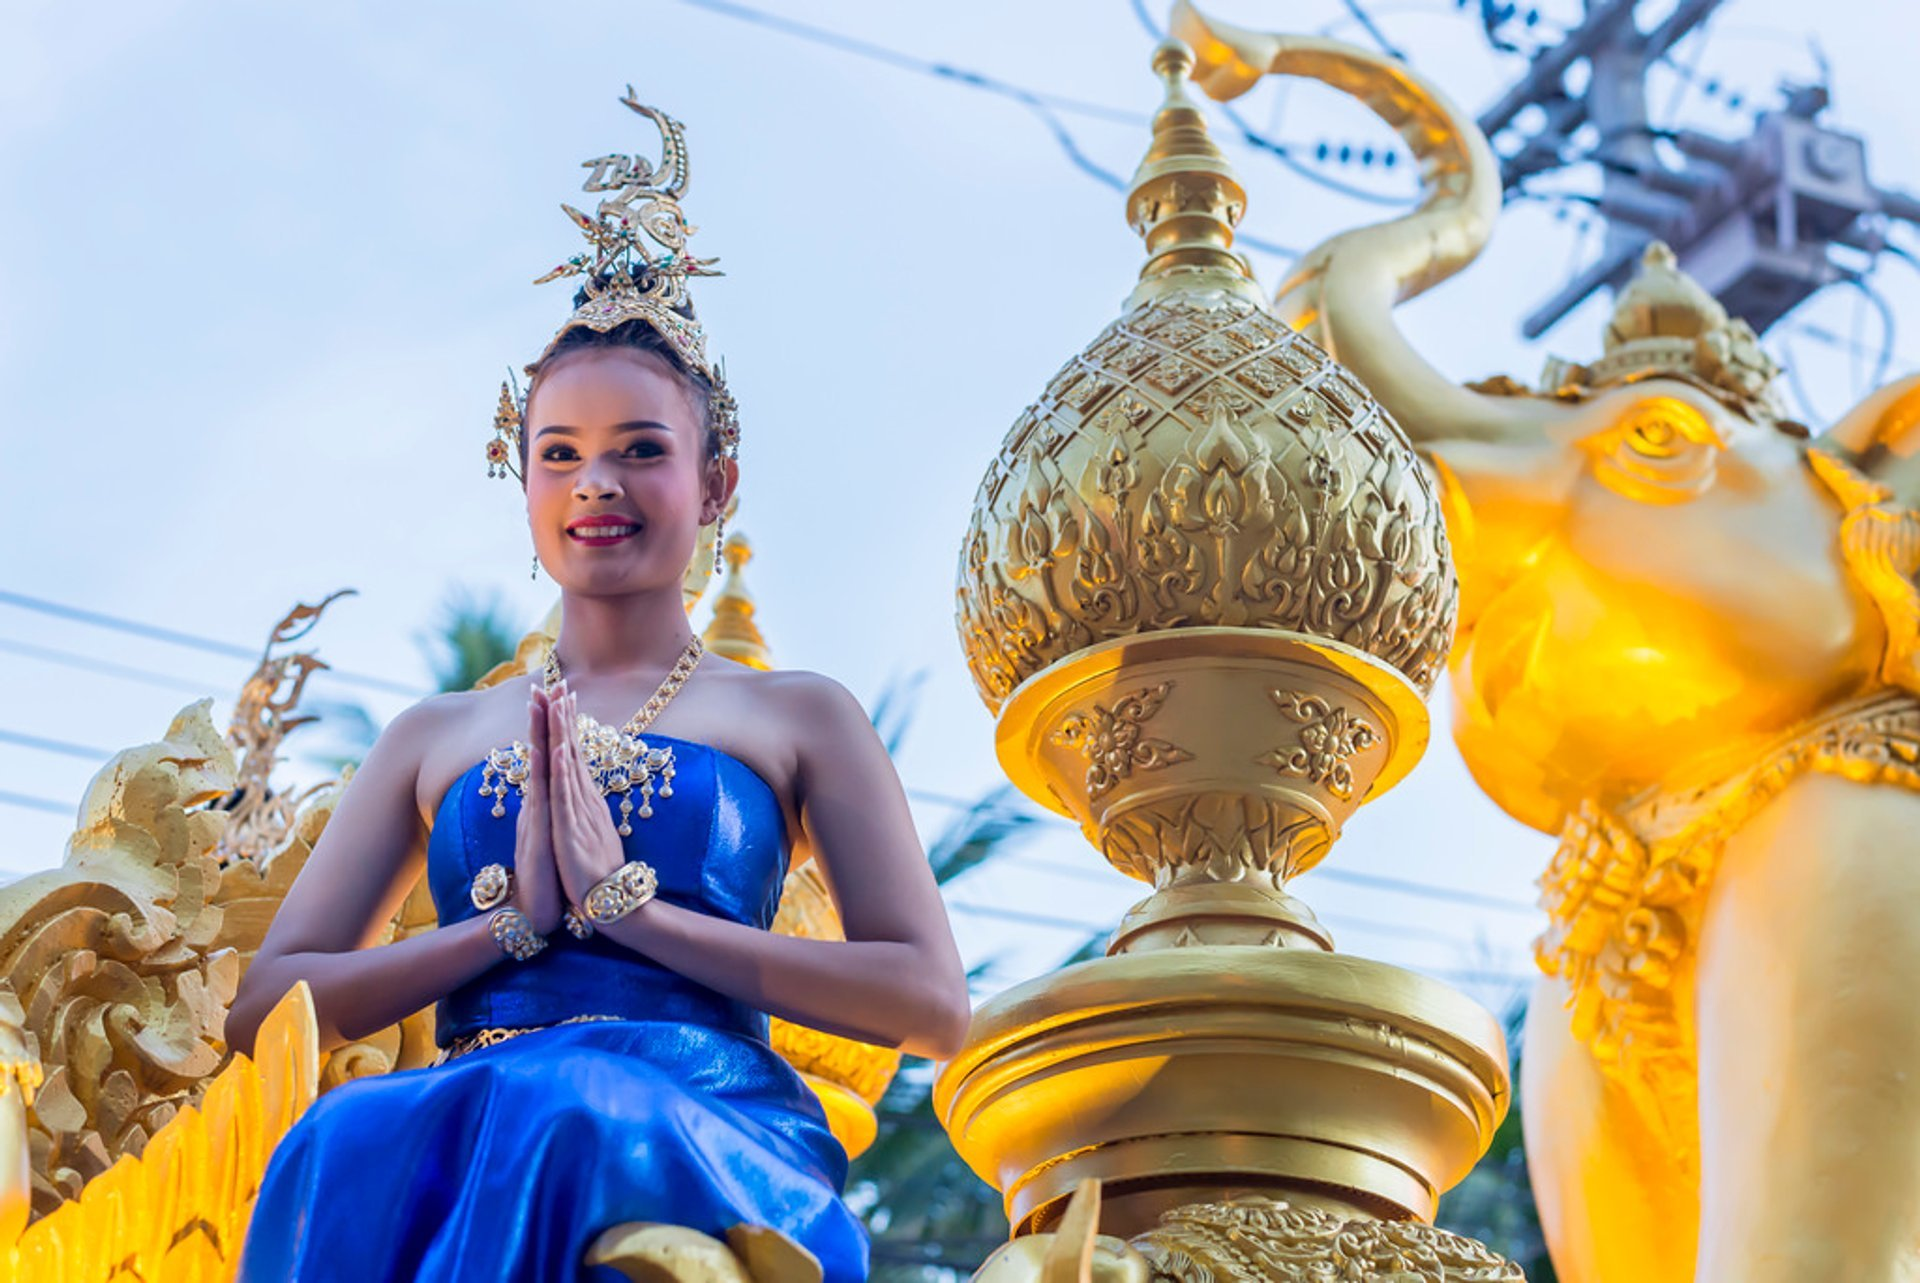 Best time to see Patong Carnival in Phuket 2019